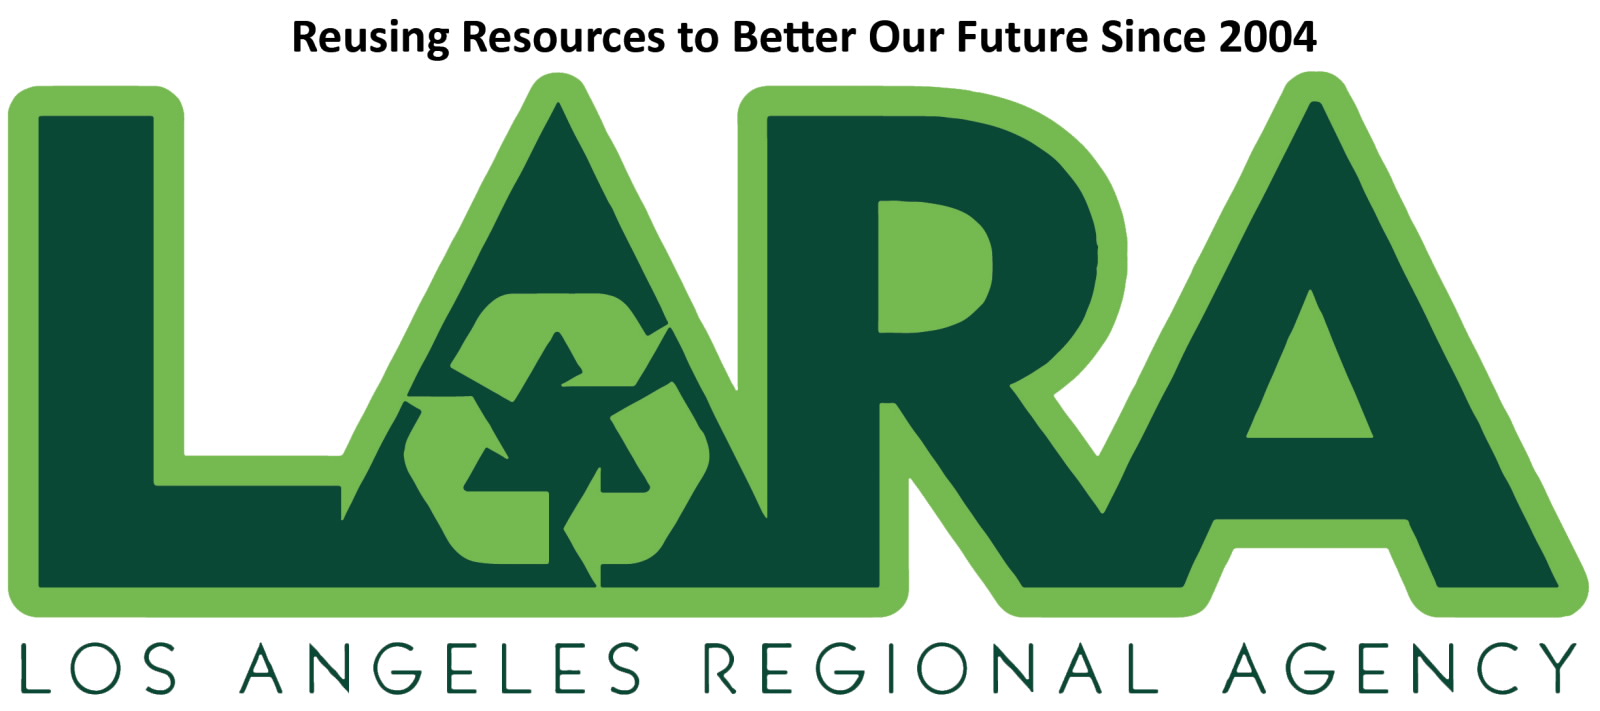 Los Angeles Regional Agency logo - Reusing Resources Since 2004